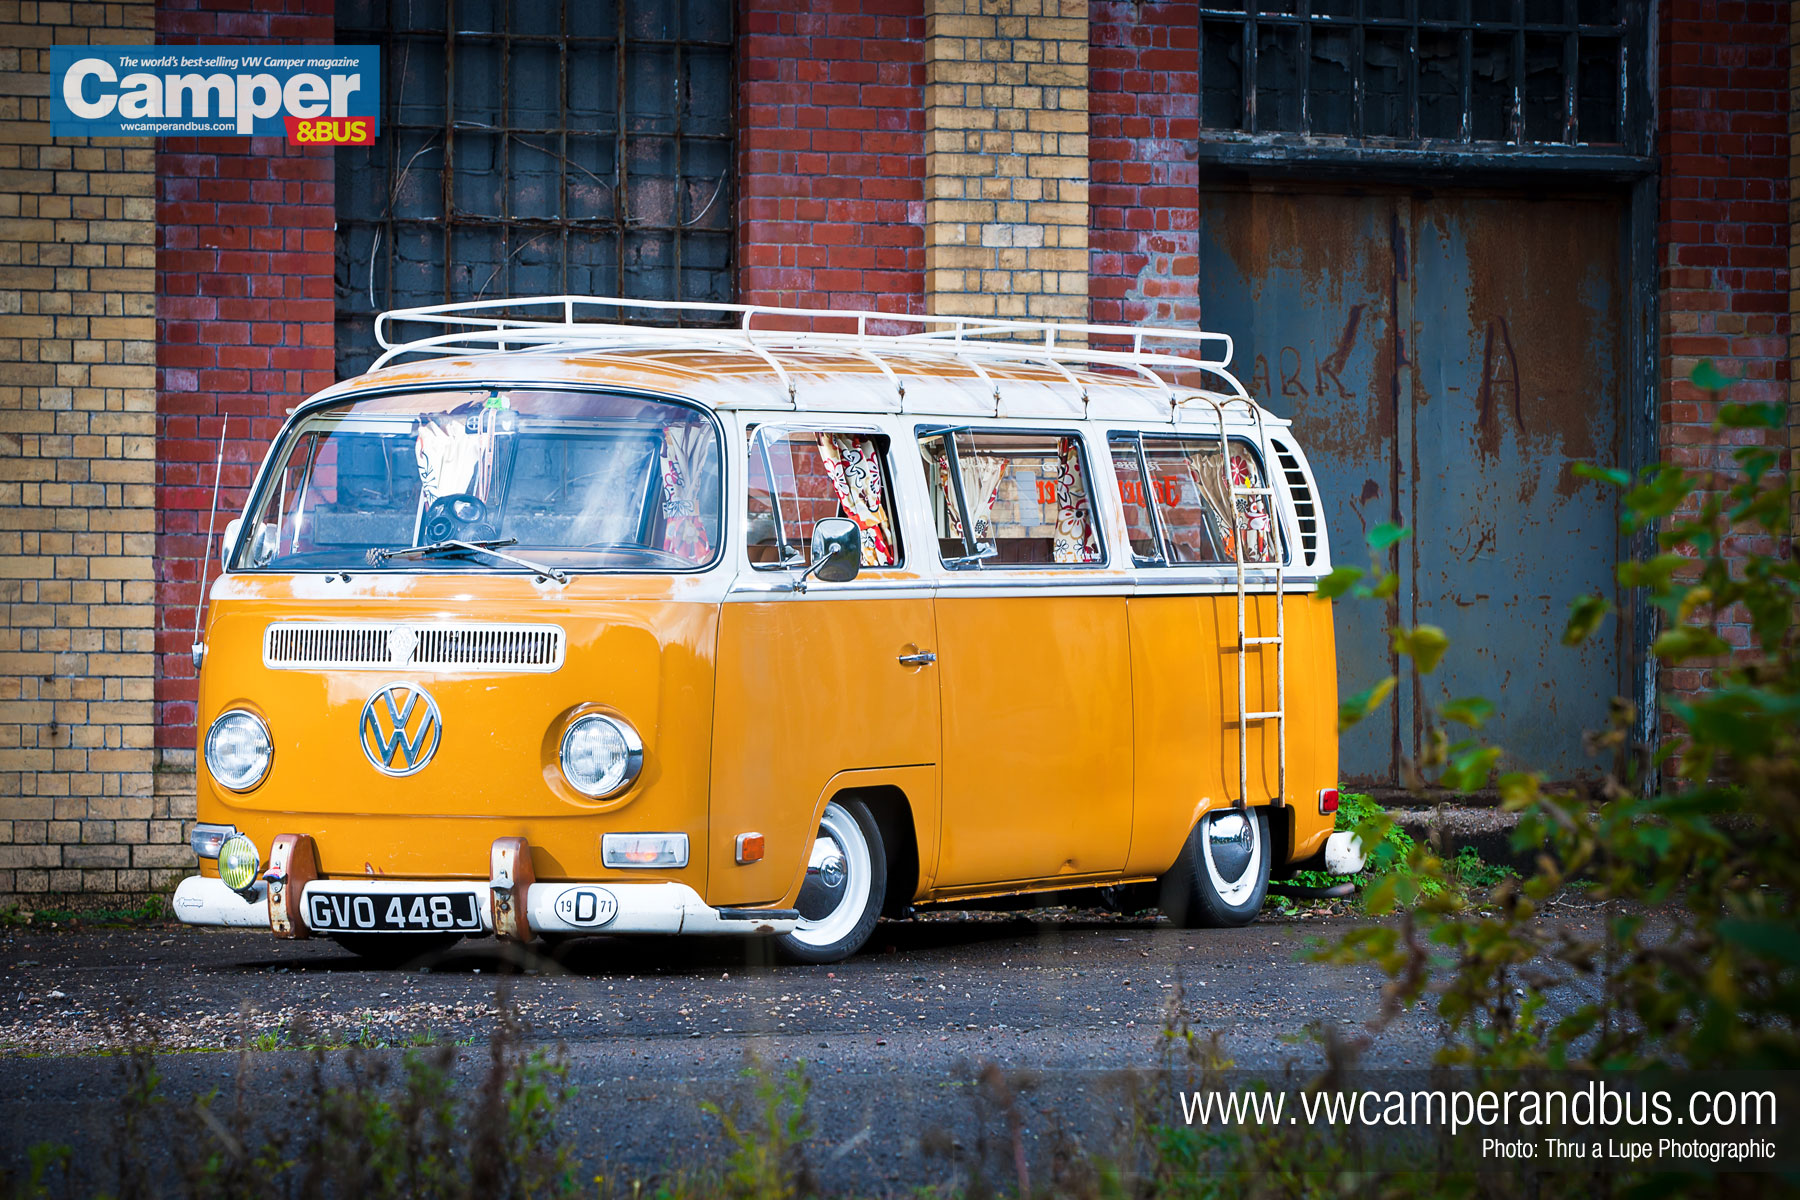 Download Camper Wallpaper Gallery